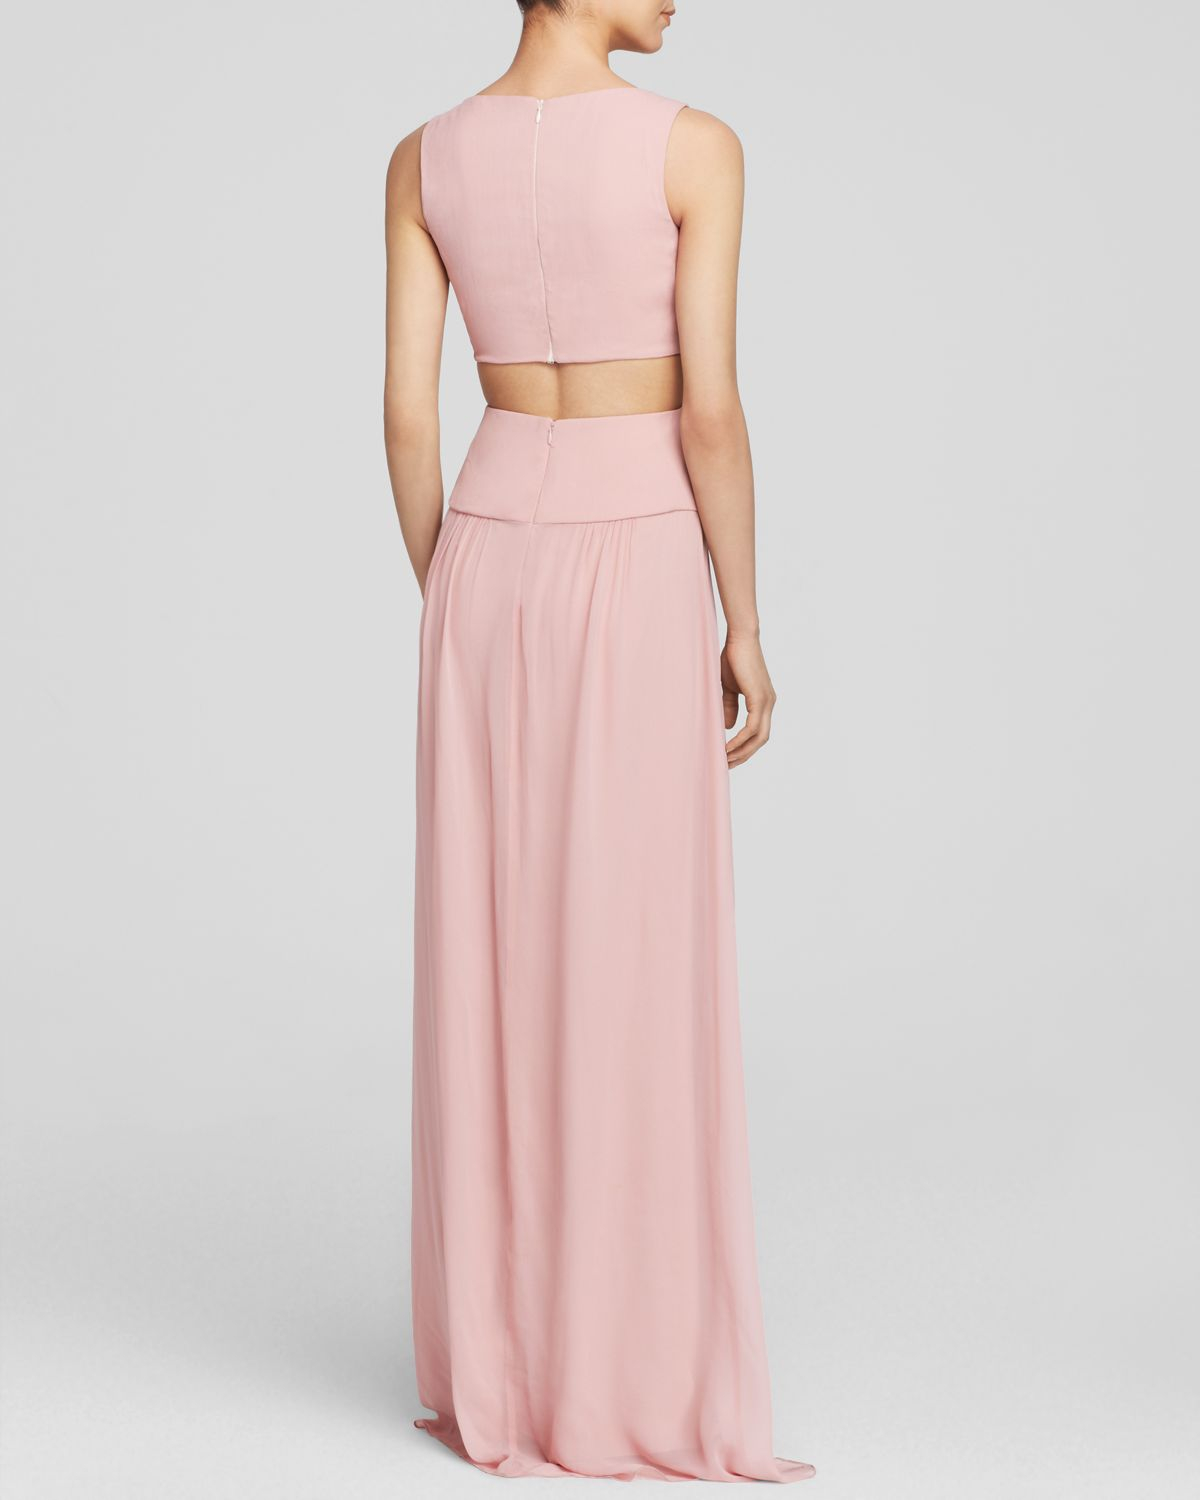 7a5608bc61673 Nicole Miller Gown - Sleeveless Cutout in Pink - Lyst